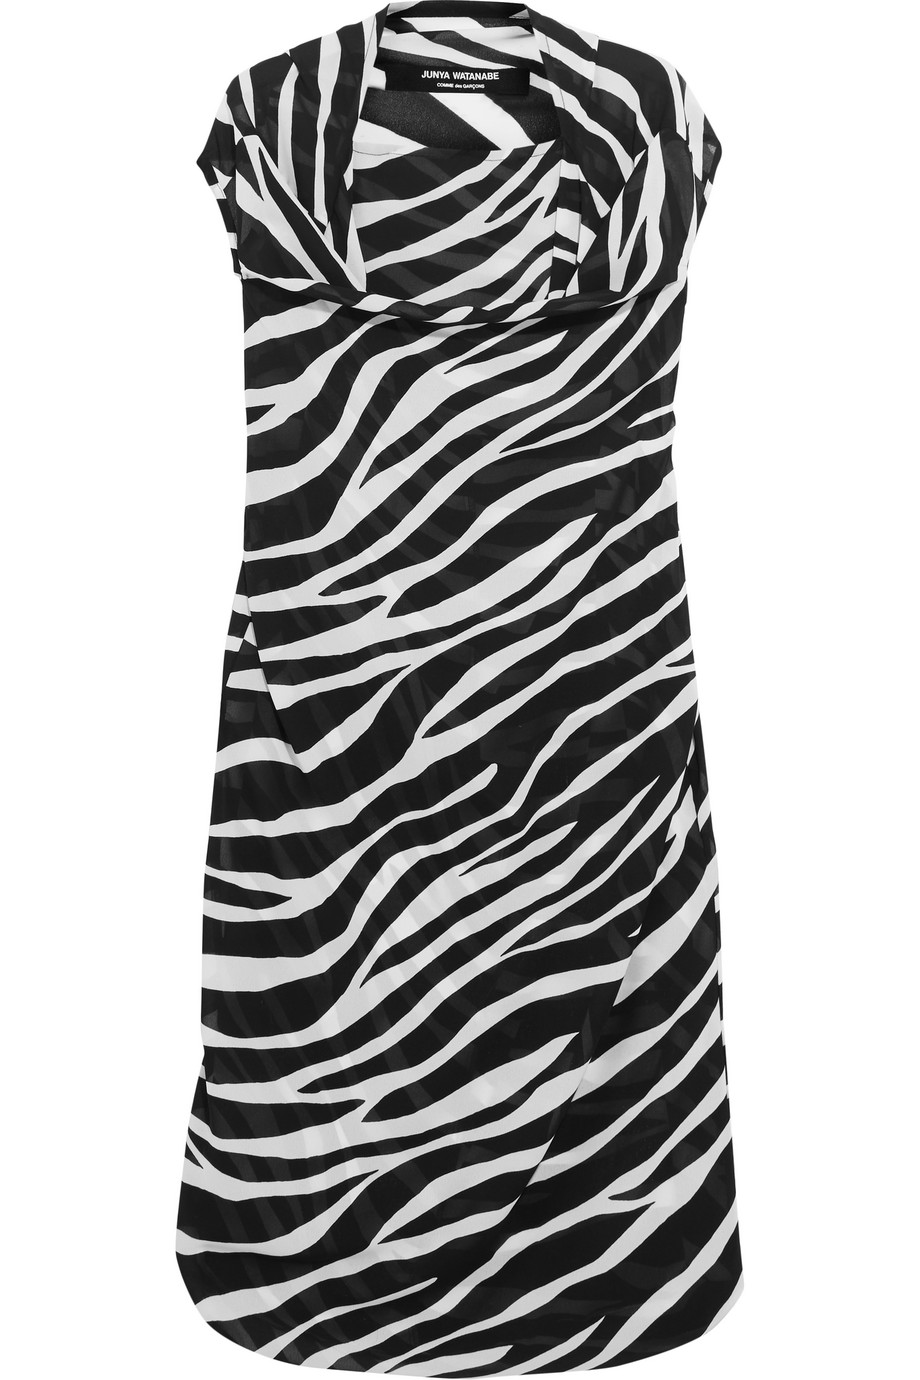 Junya Watanabe Draped Zebra-Print Georgette Dress, Black/Zebra Print, Women's - spotted, Size: S